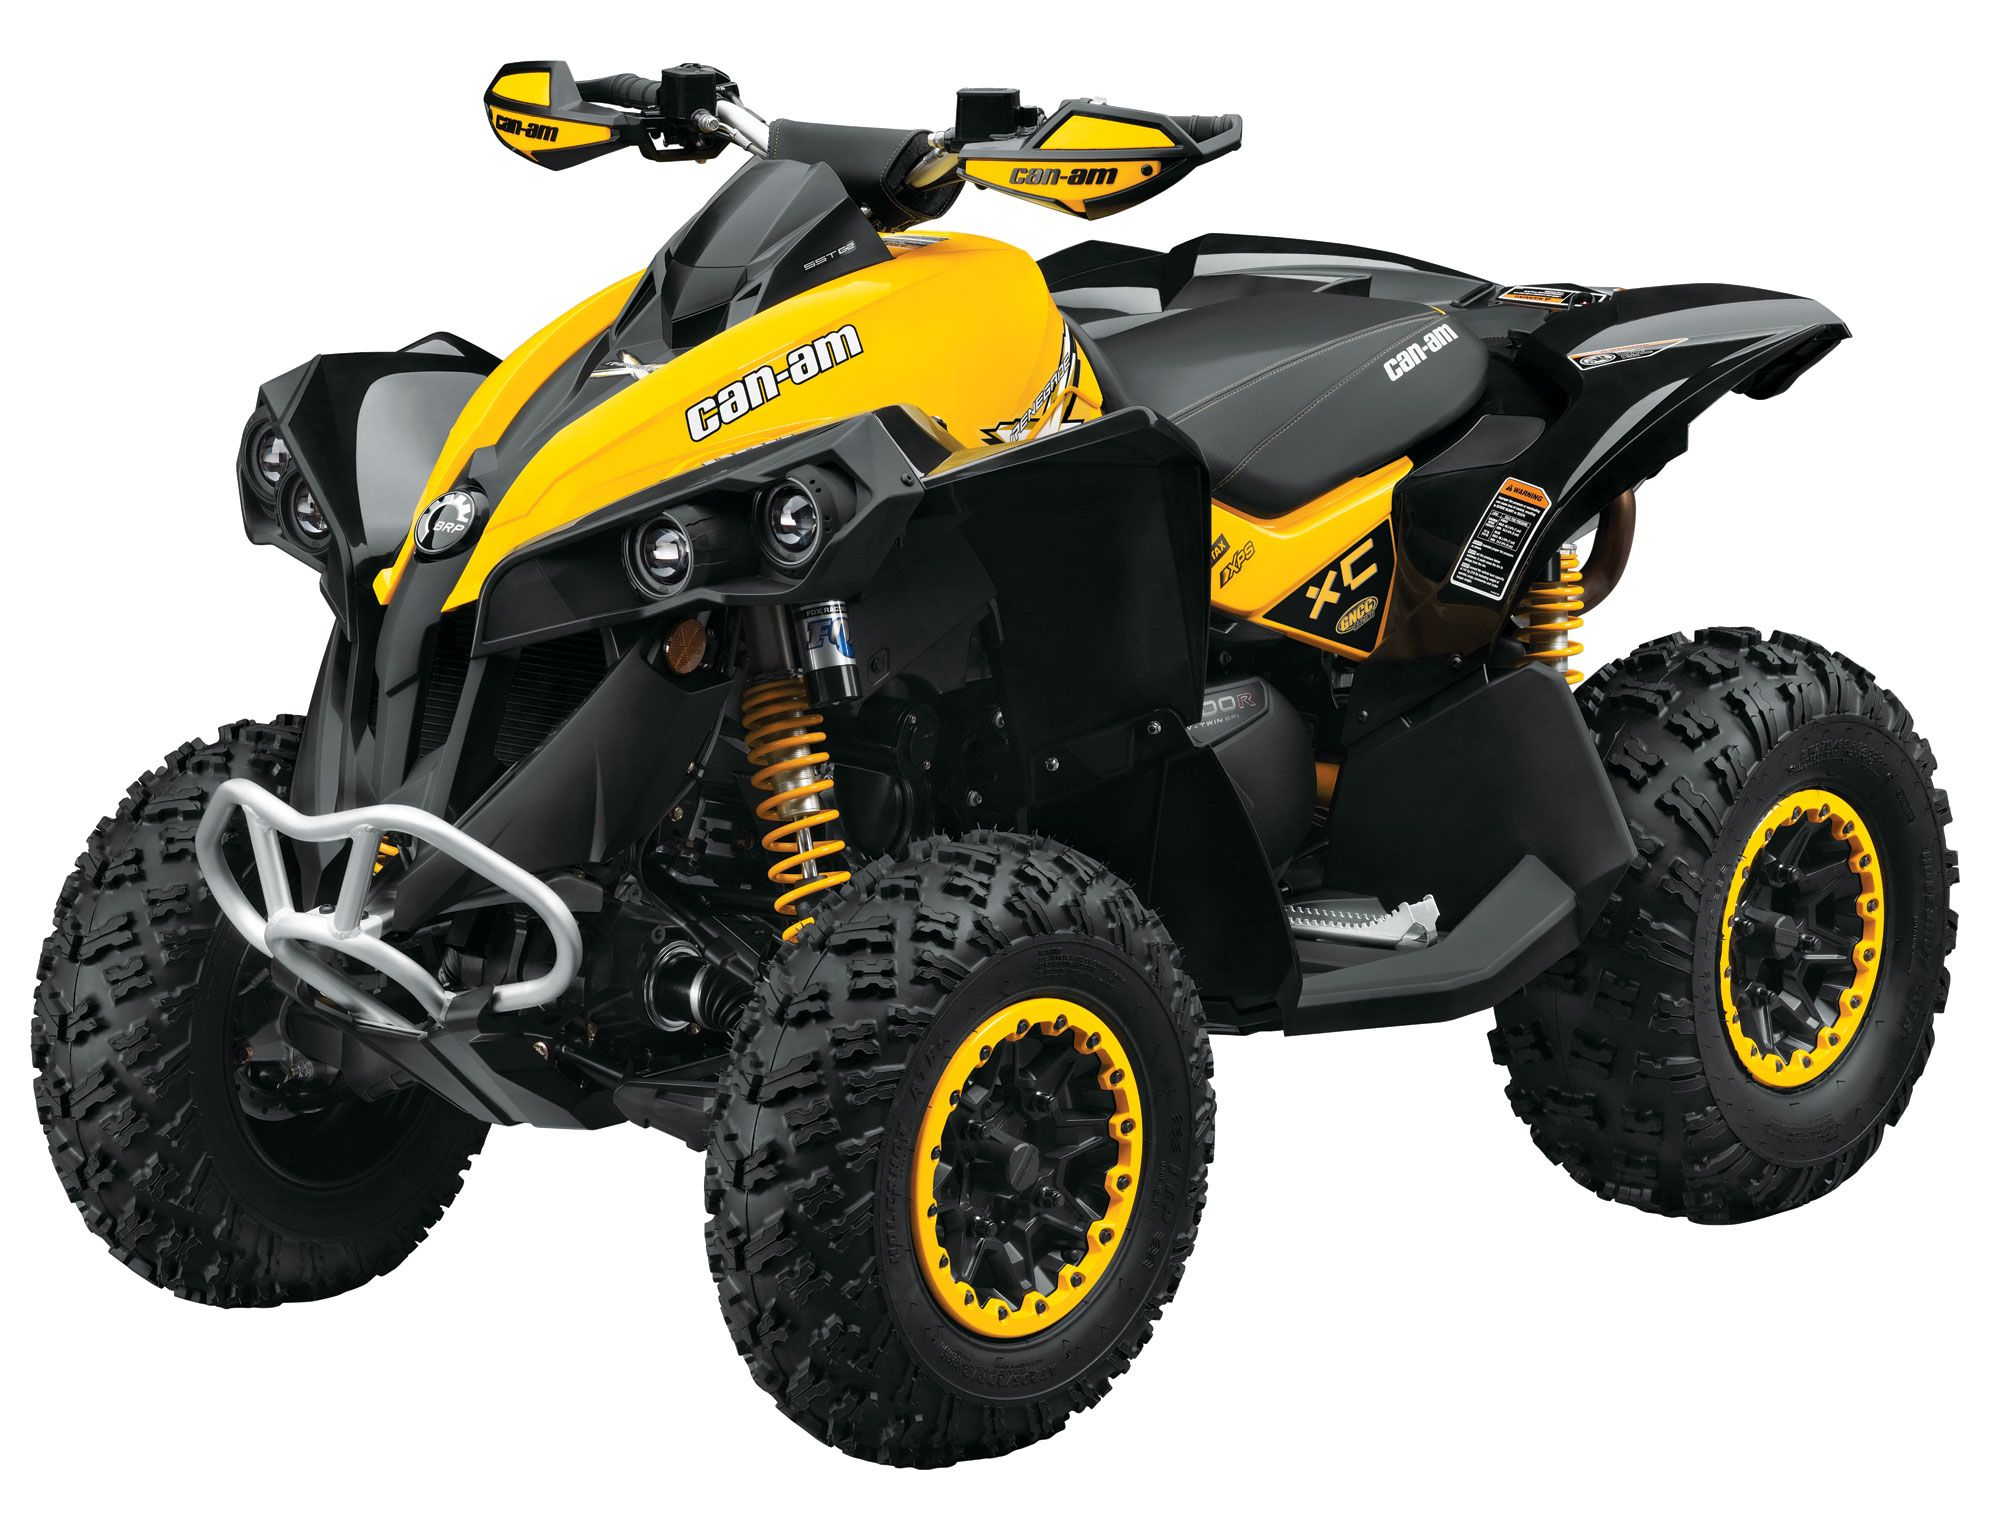 2013 can am renegade xxc 800r